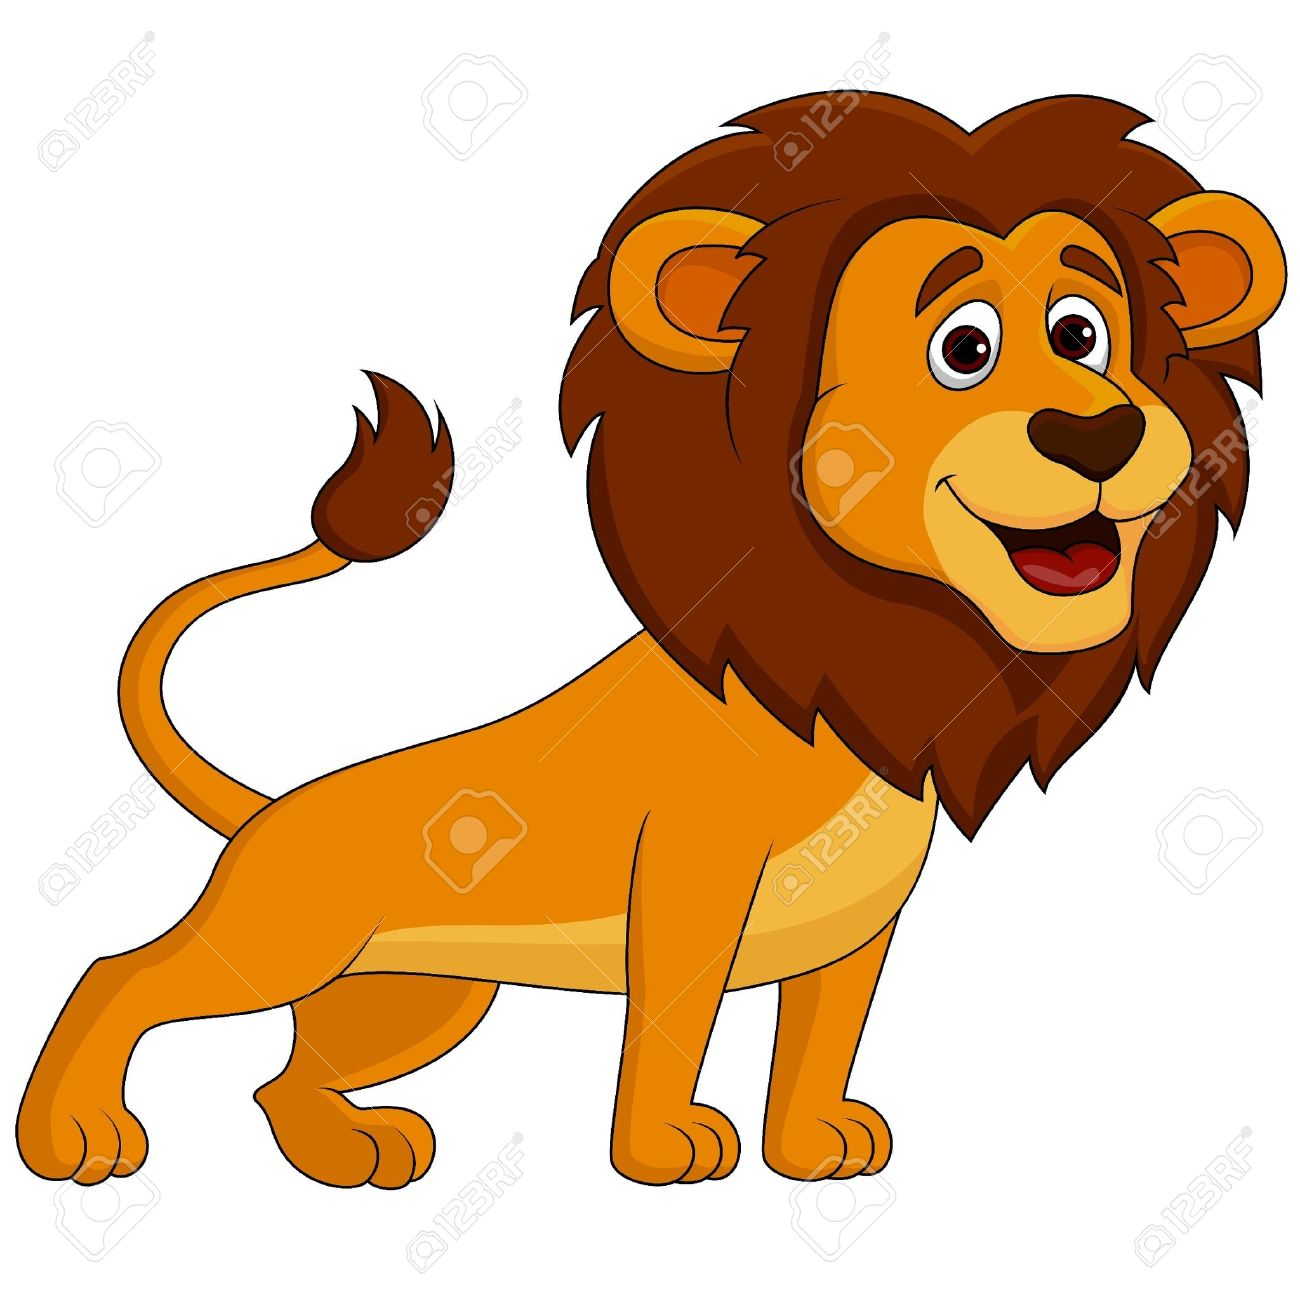 Hd lion clipart picture free Lions clipart carnivore - 195 transparent clip arts, images and ... picture free